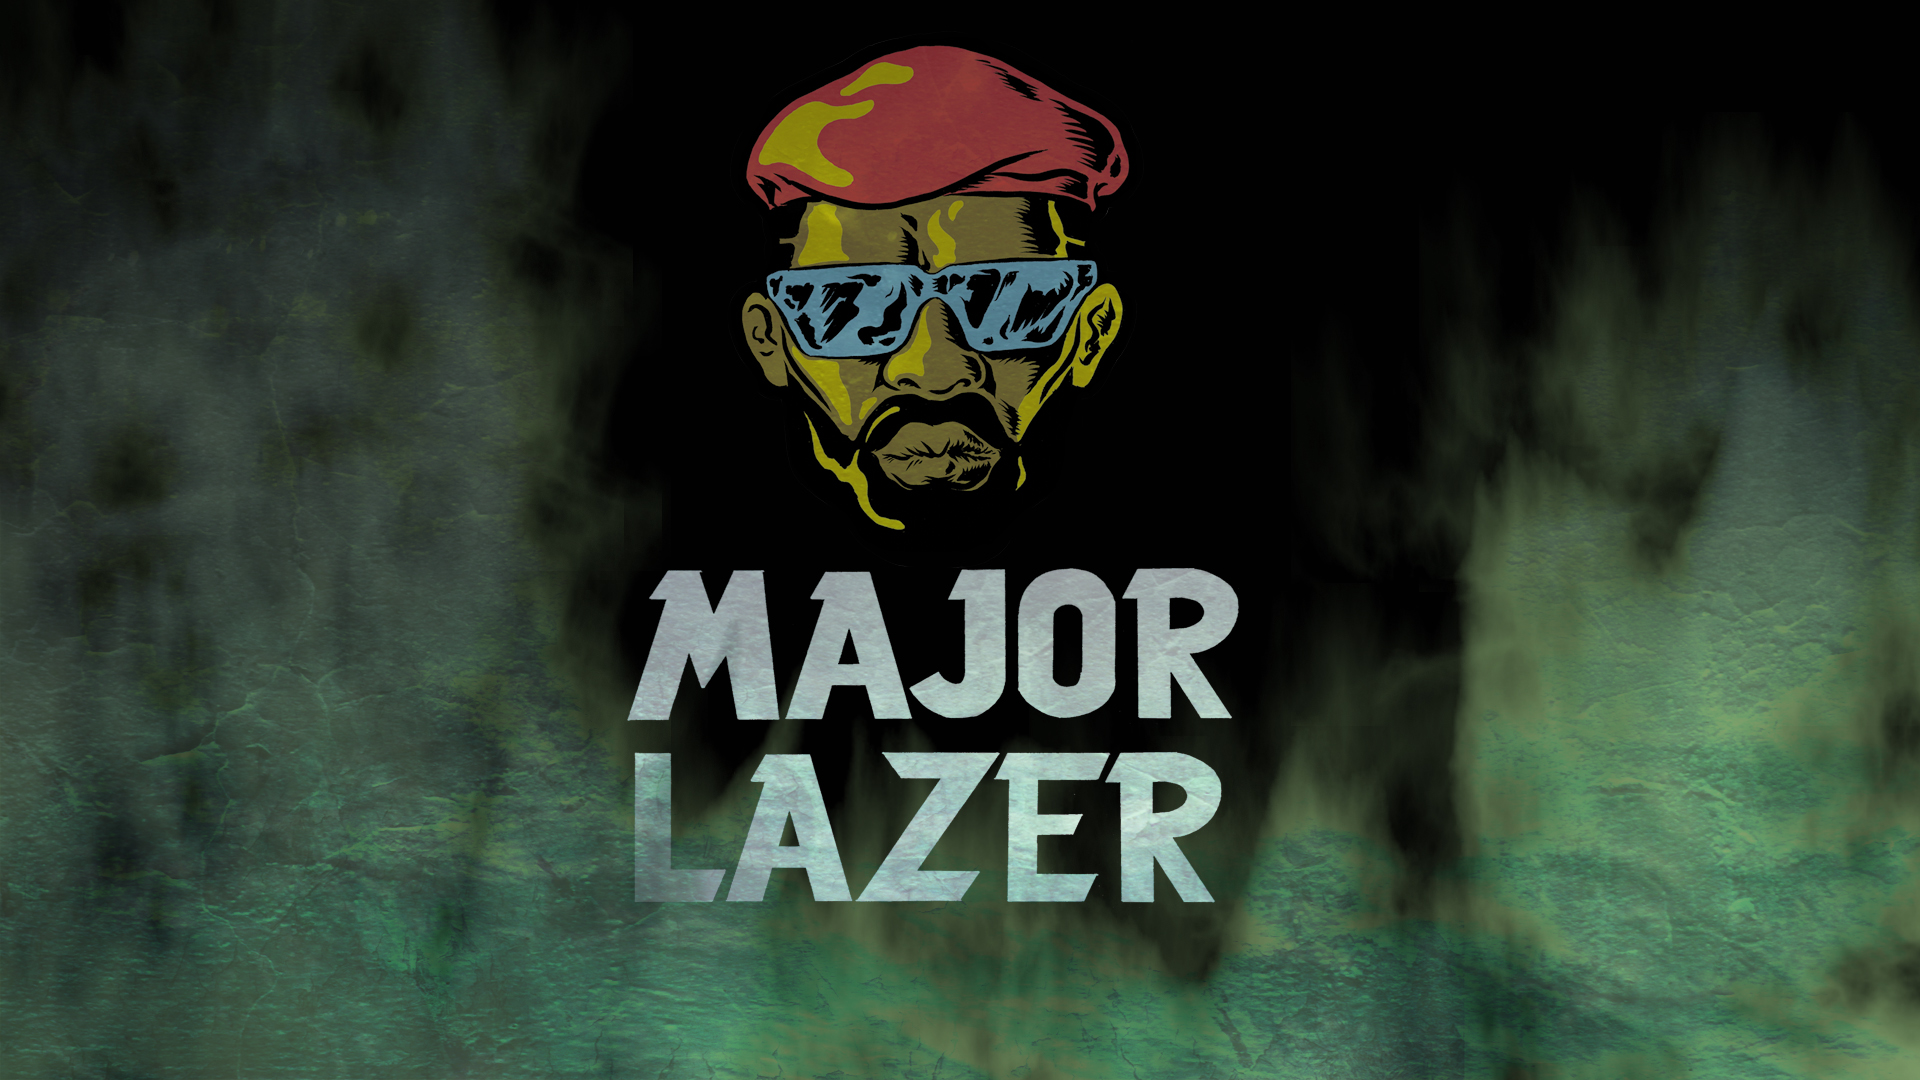 lazer 1280x1024 hd wallpaper - photo #20